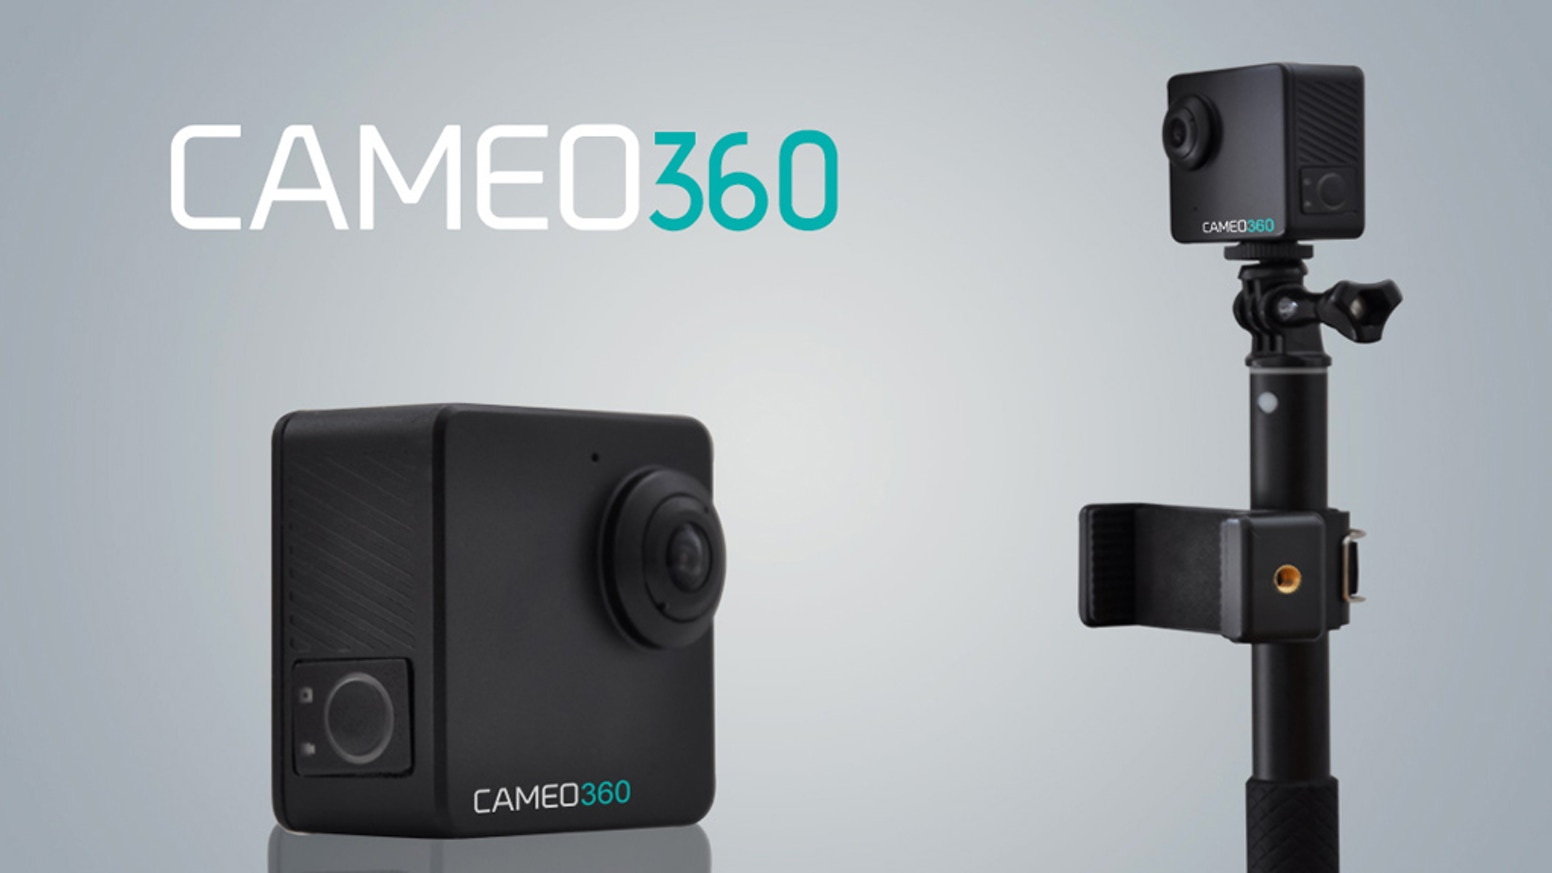 A pocket-sized, 4K camera loaded with features that will change the way you capture and edit content and at a fraction of the price.